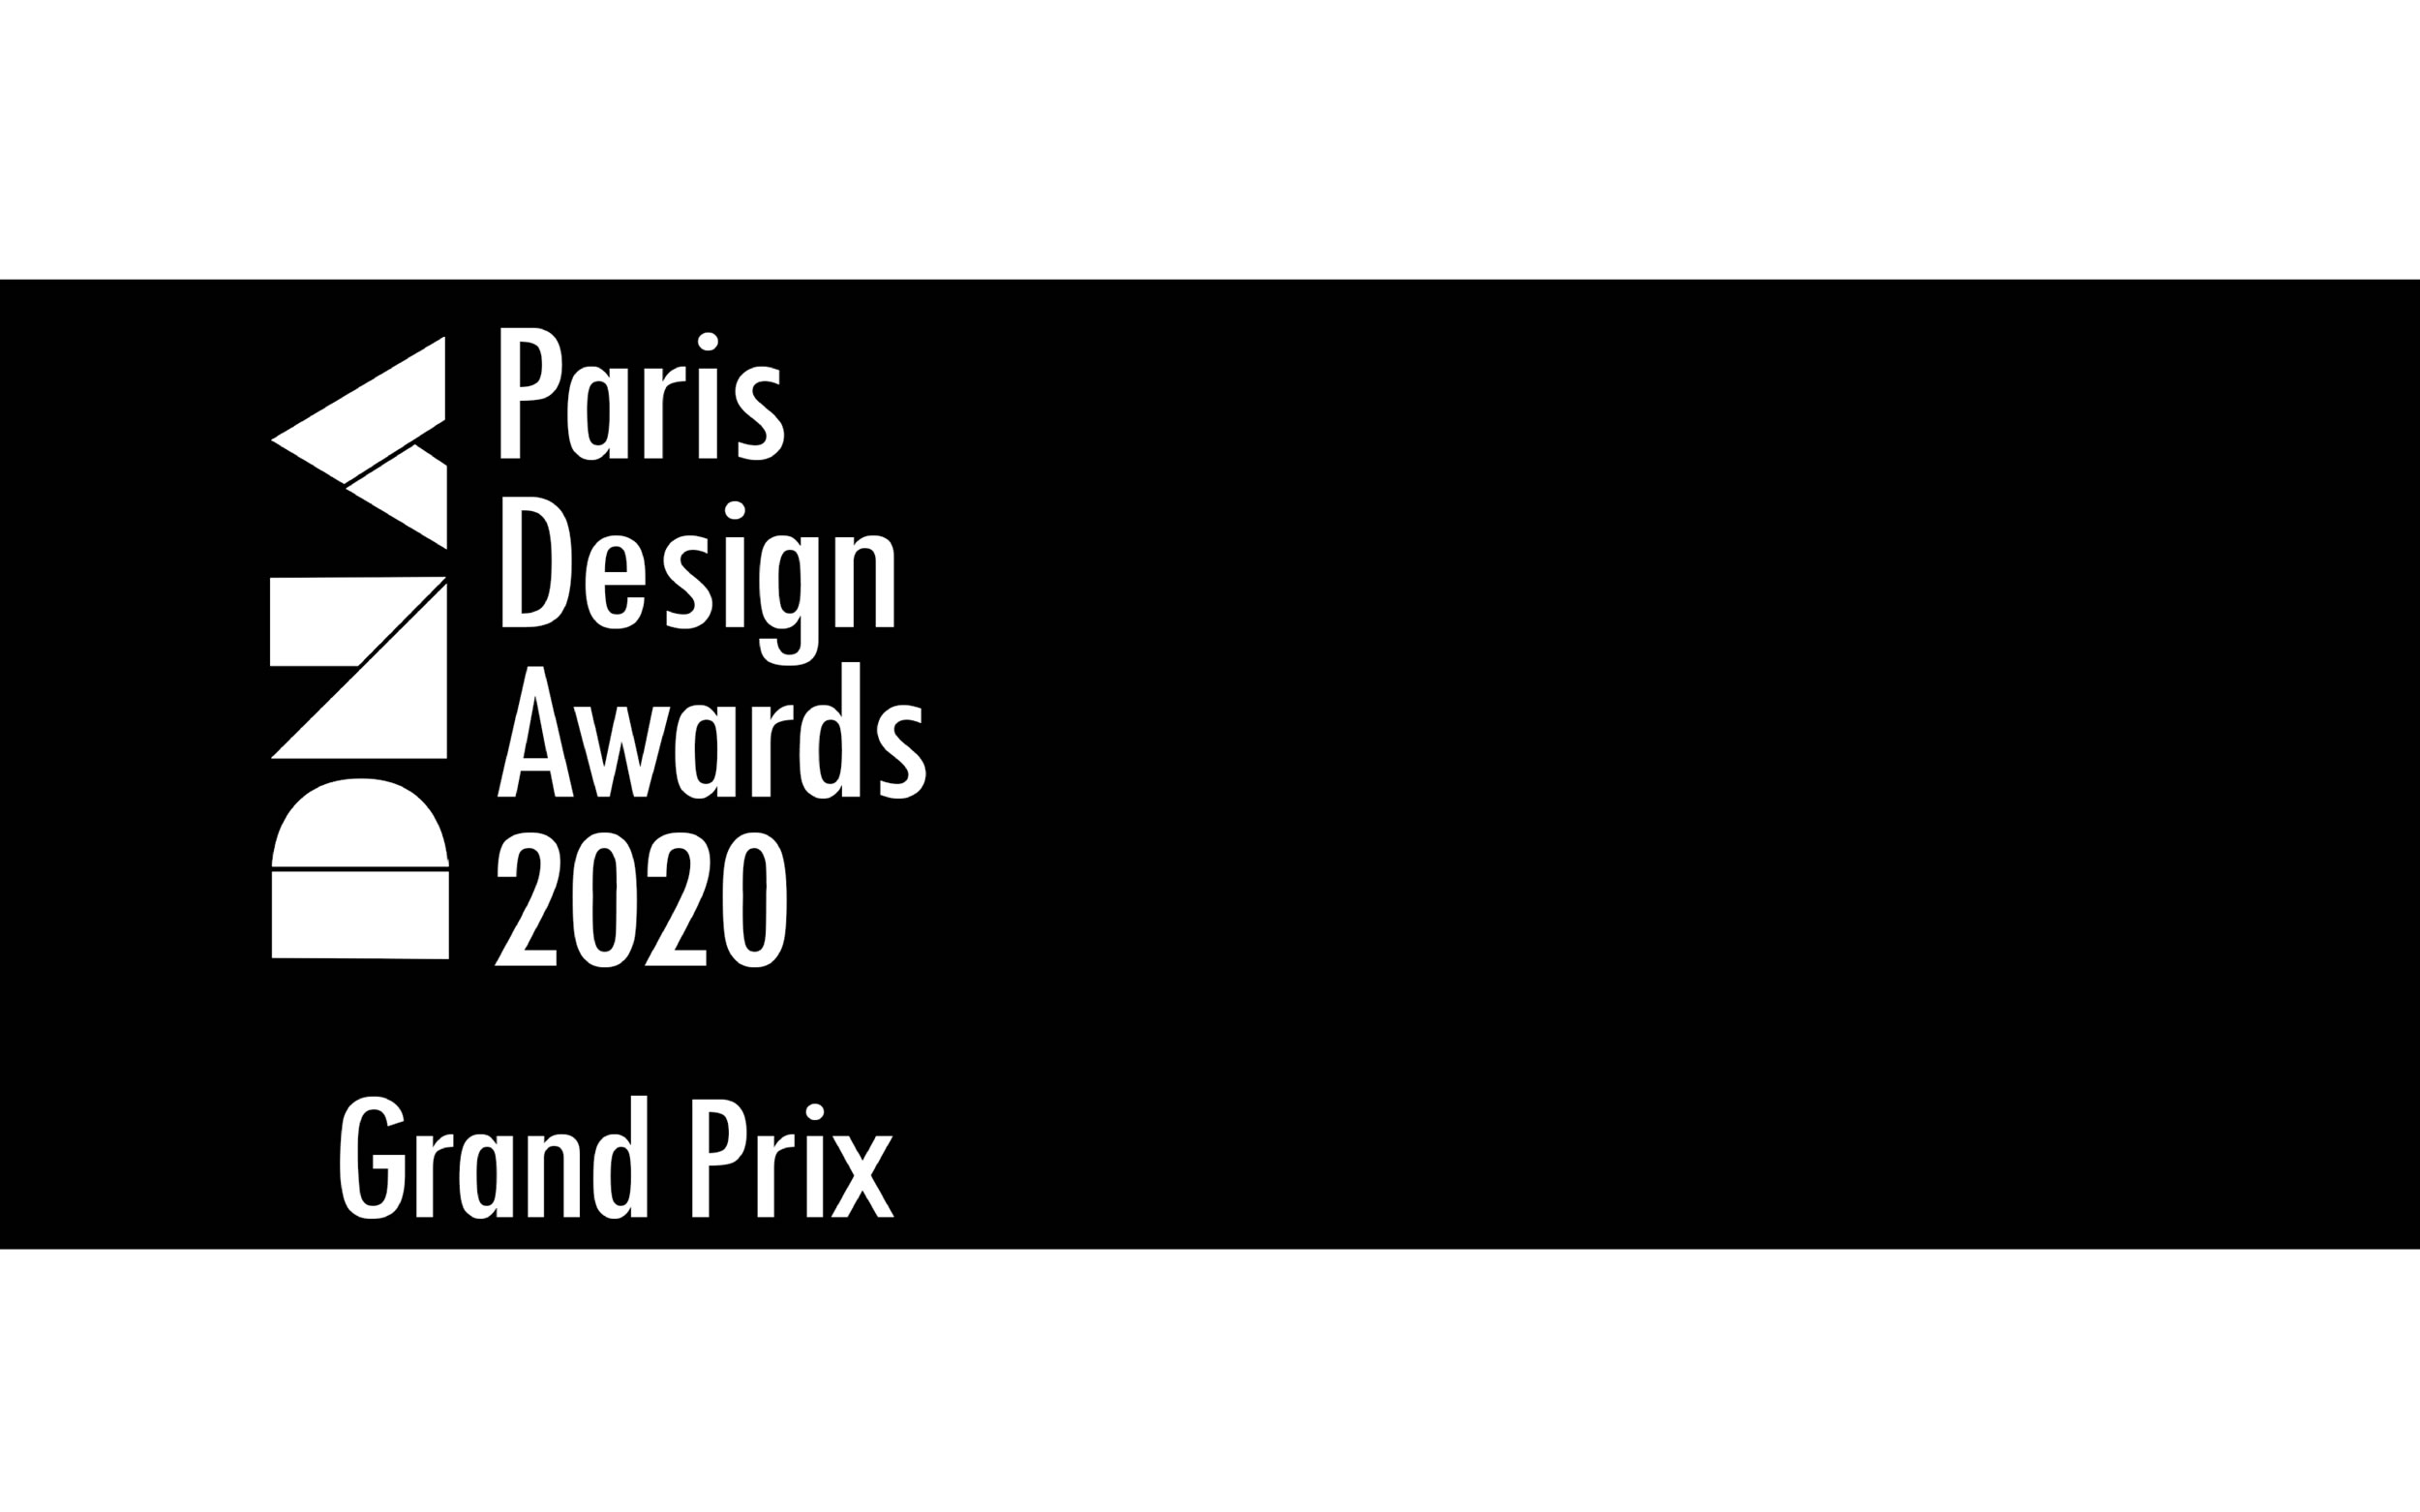 FELIX SCHWAKE Winner Design Award Paris Grand Prix 2020